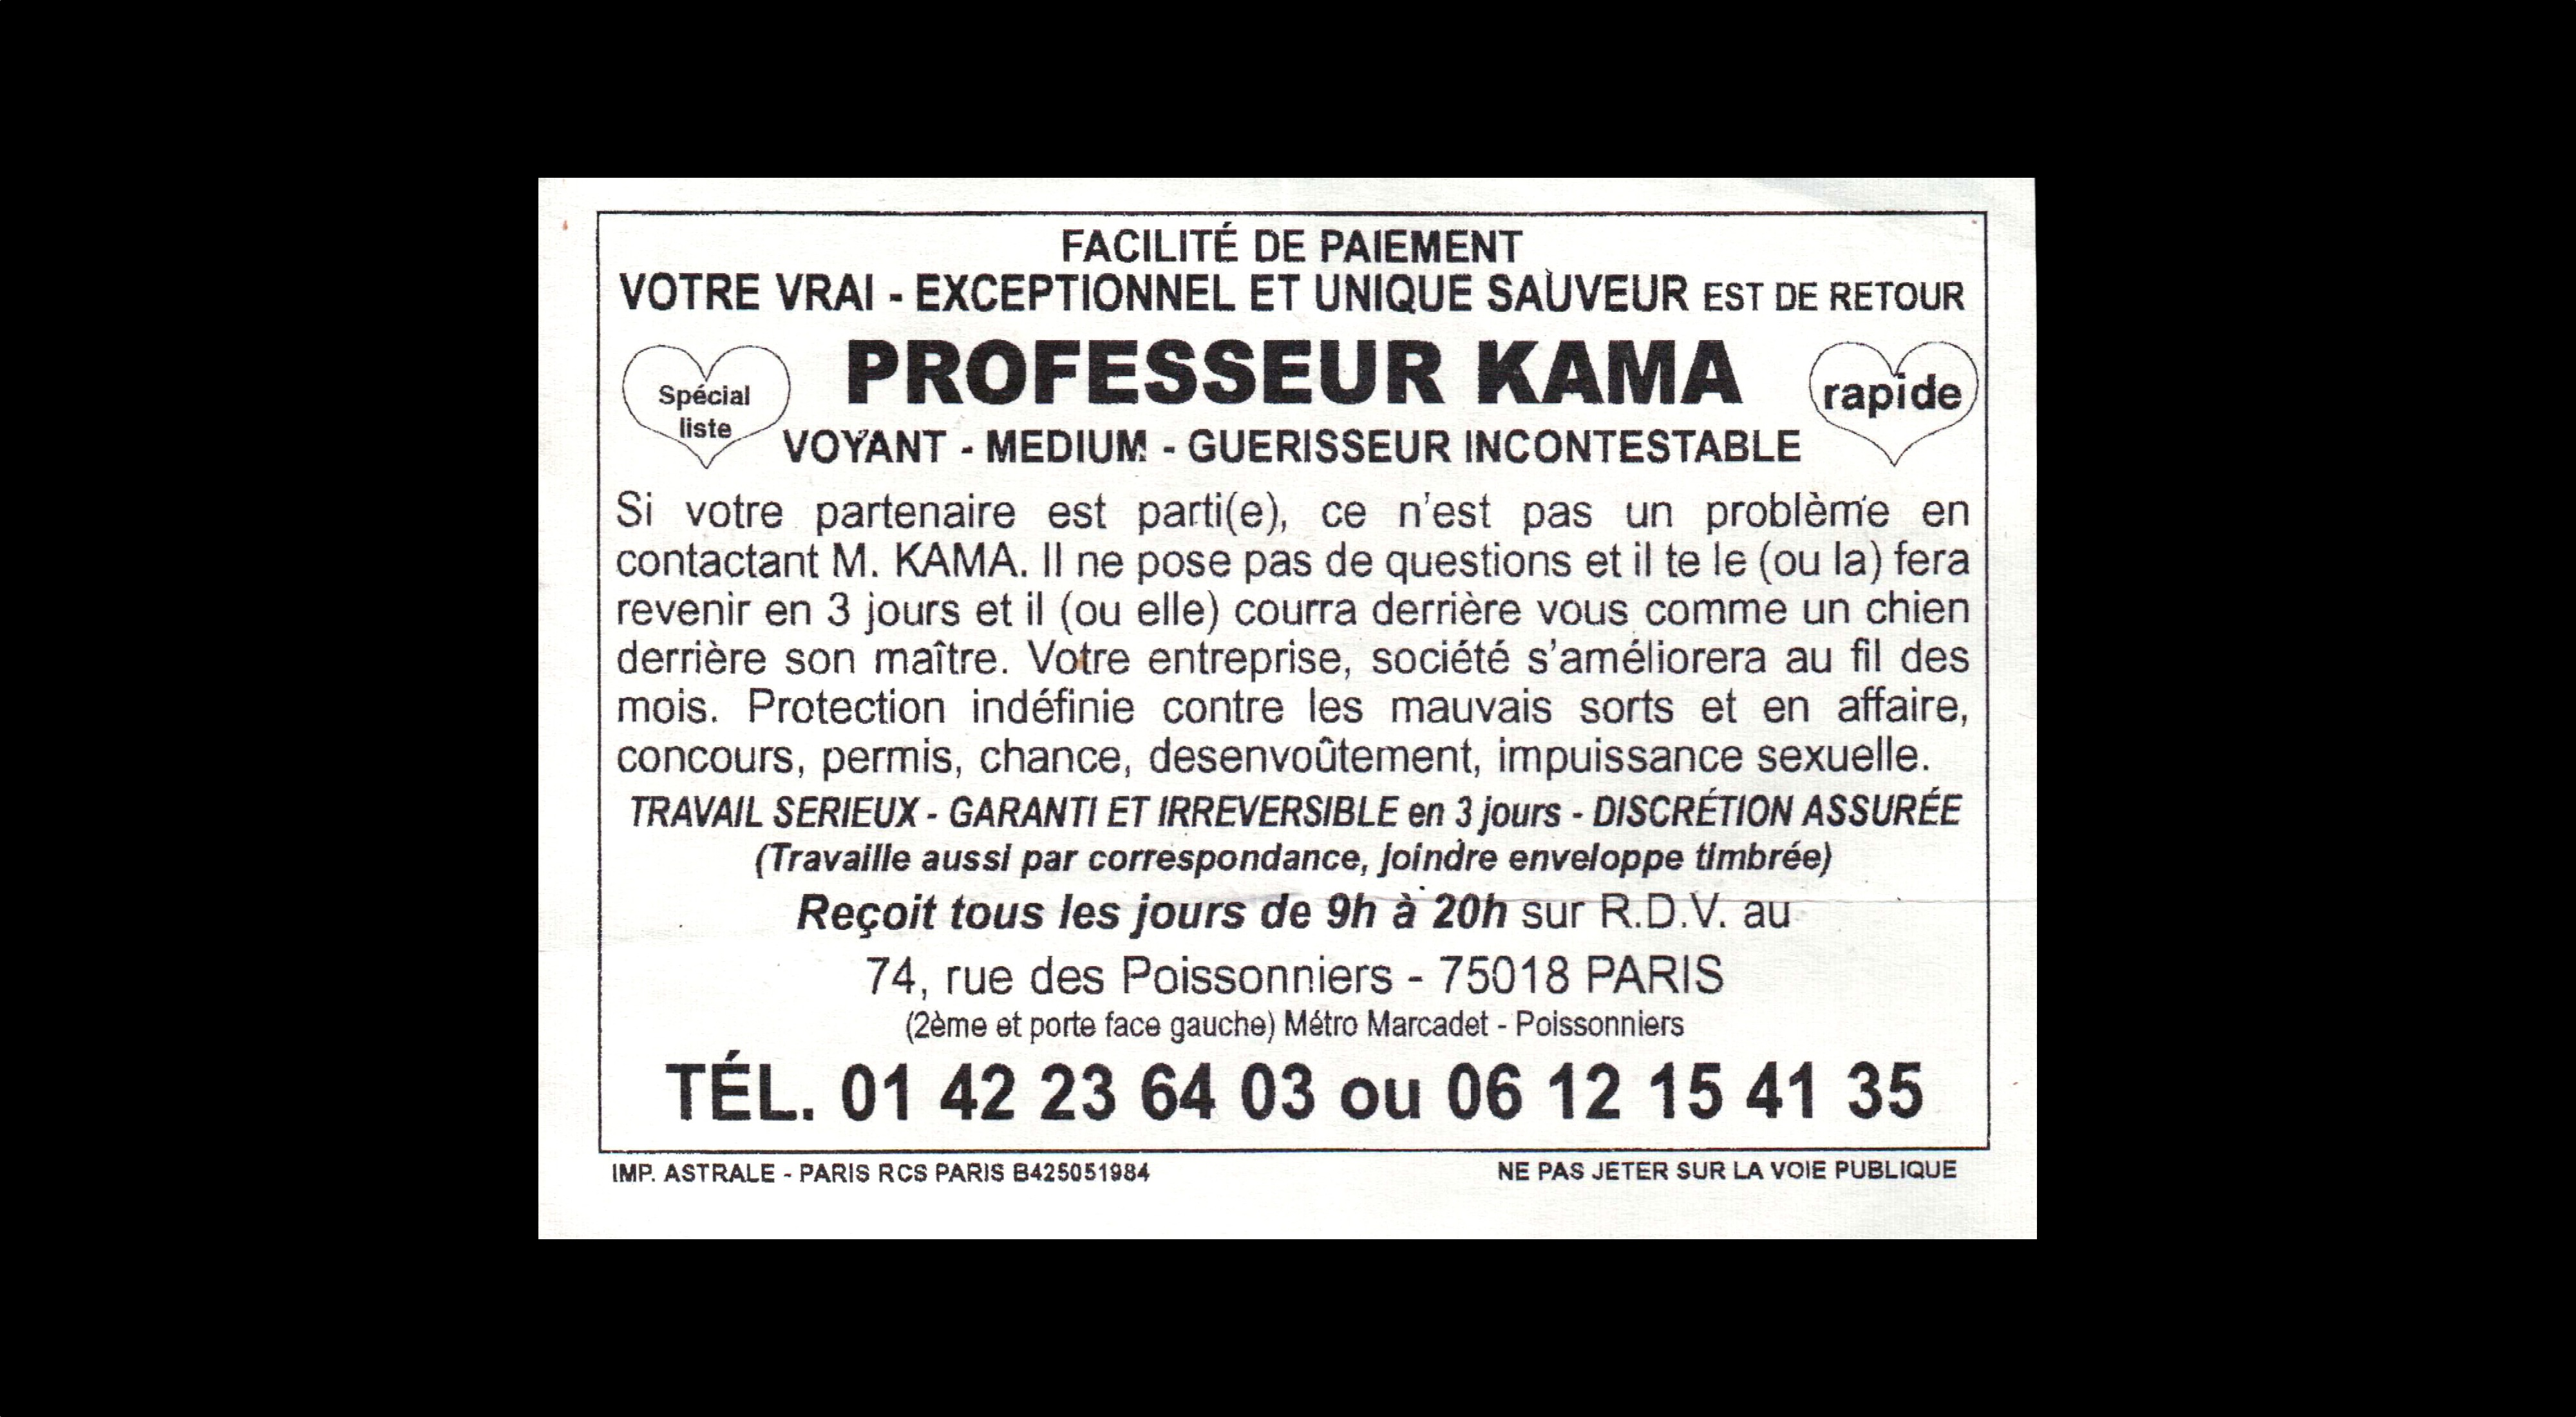 card of PROFESSEUR KAMA